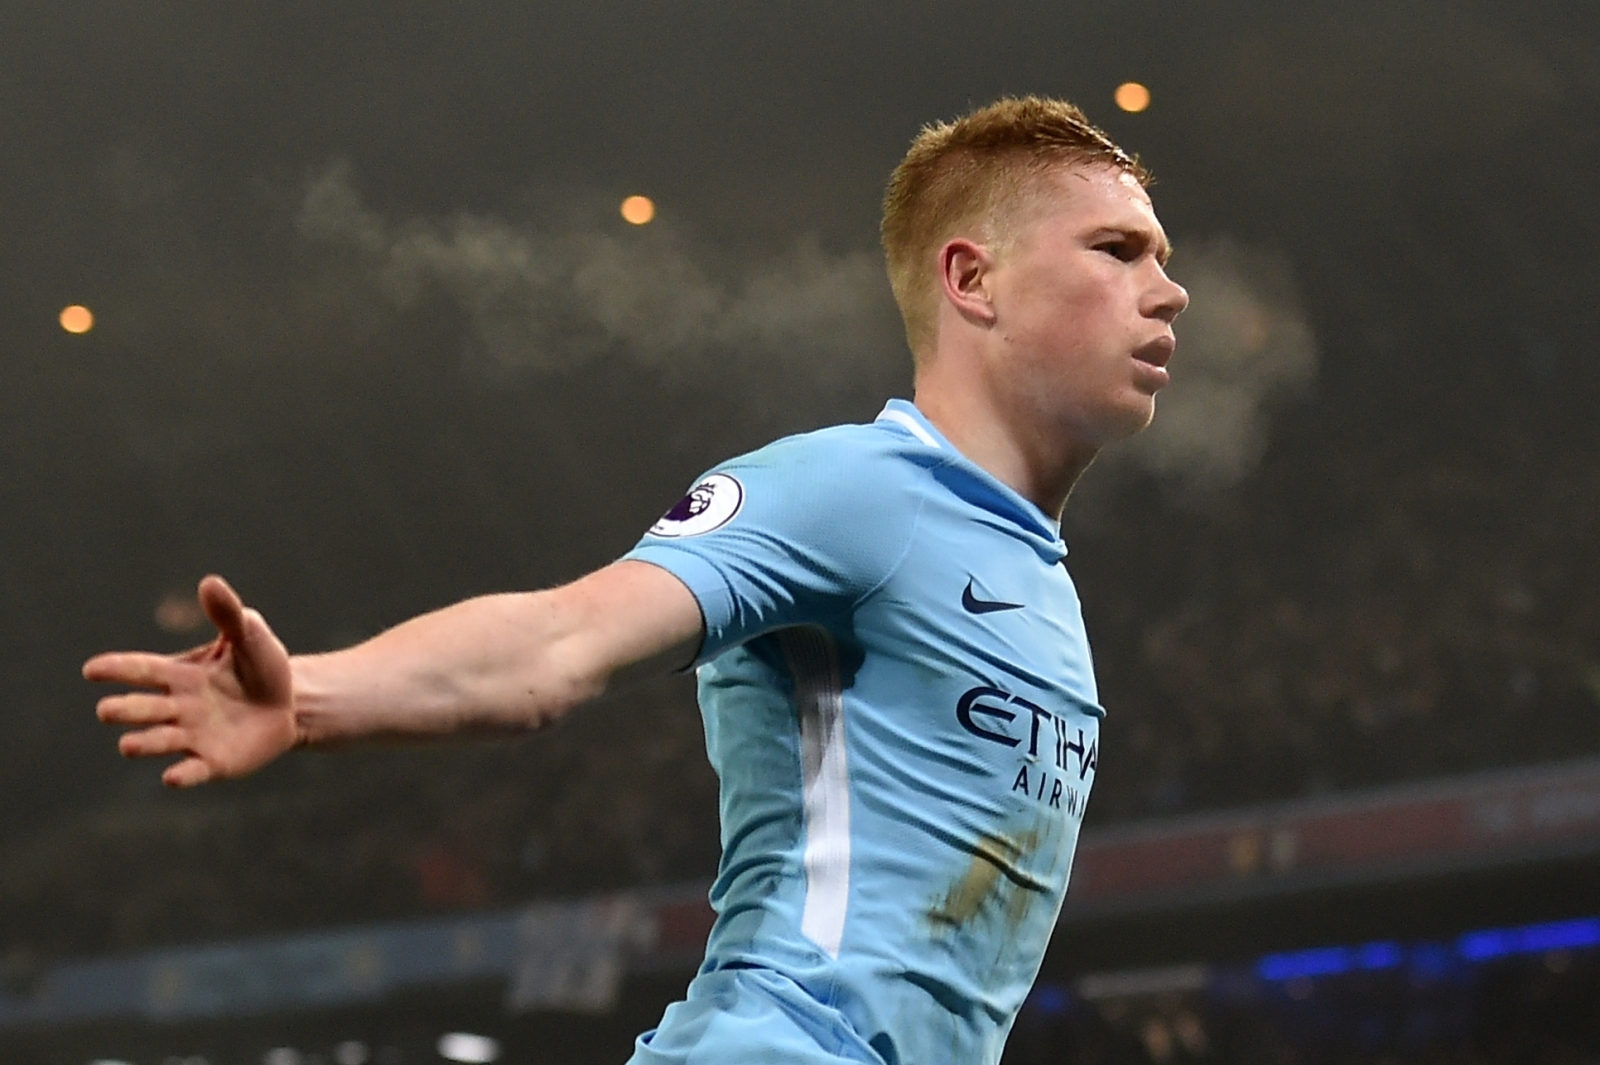 Manchester City's Kevin De Bruyne to get £200k per week deal